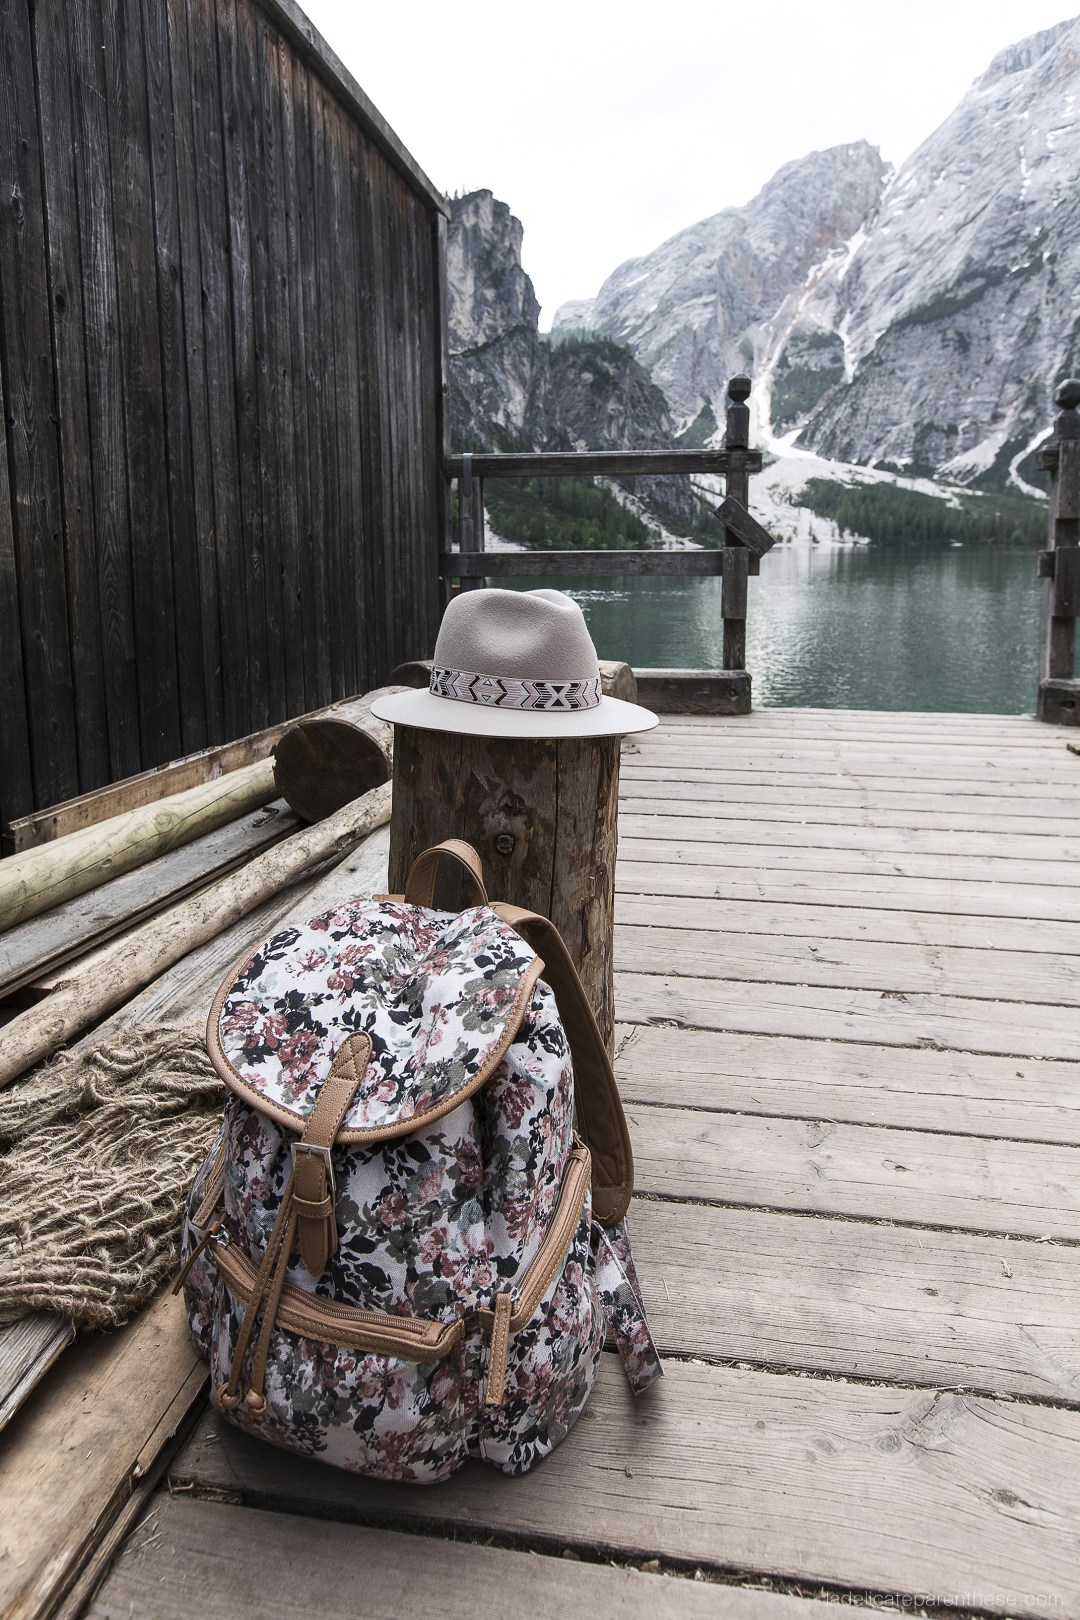 Pragser wildsee- lago di braies adventure